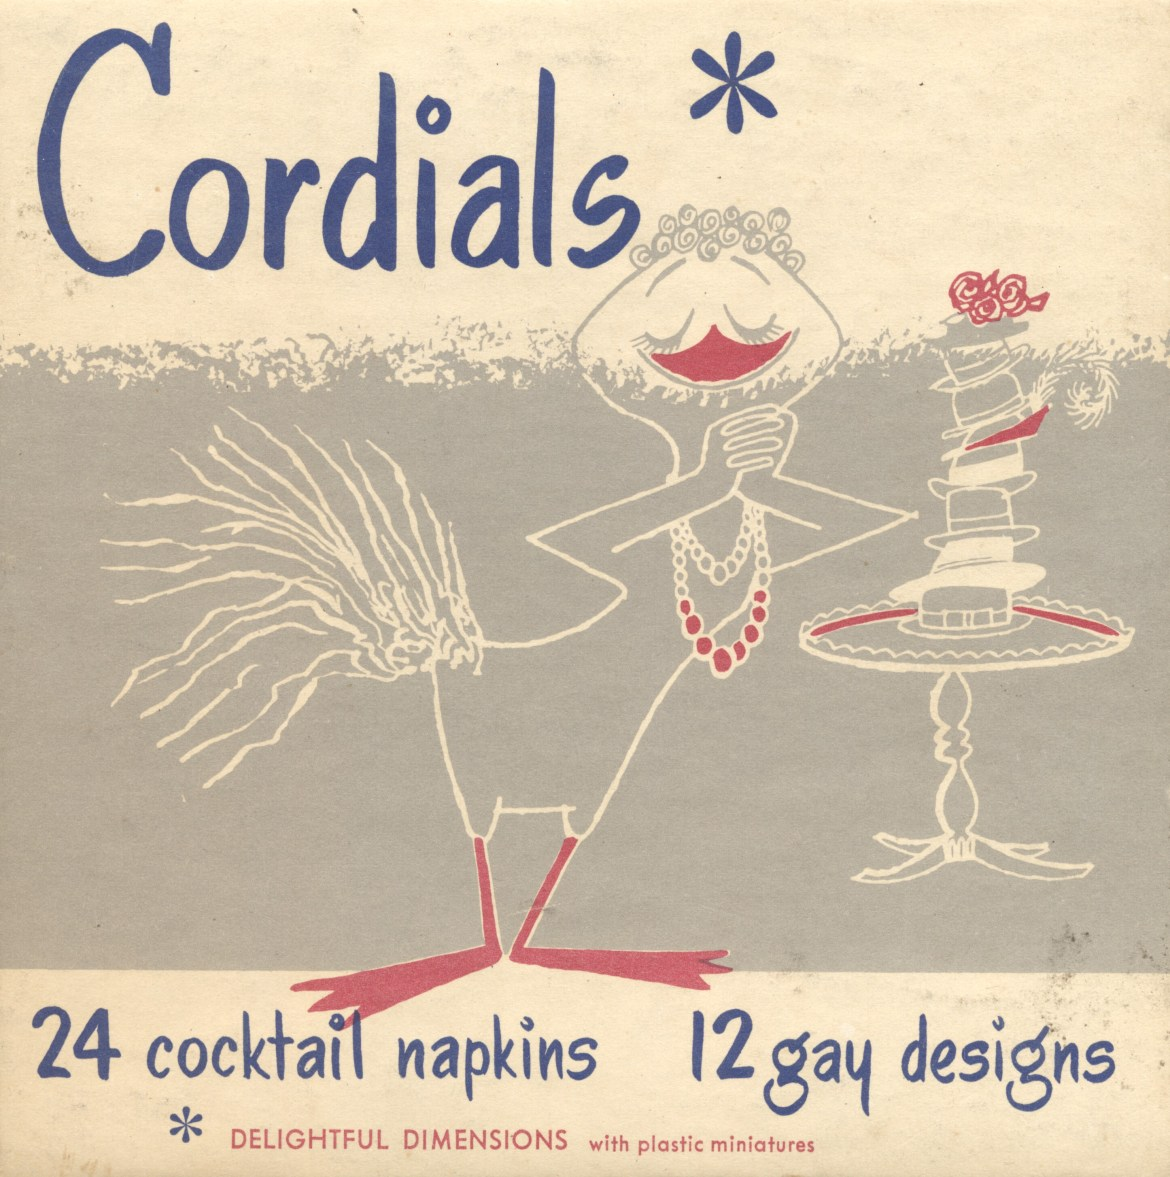 1954 Cordials Cocktail Napkins